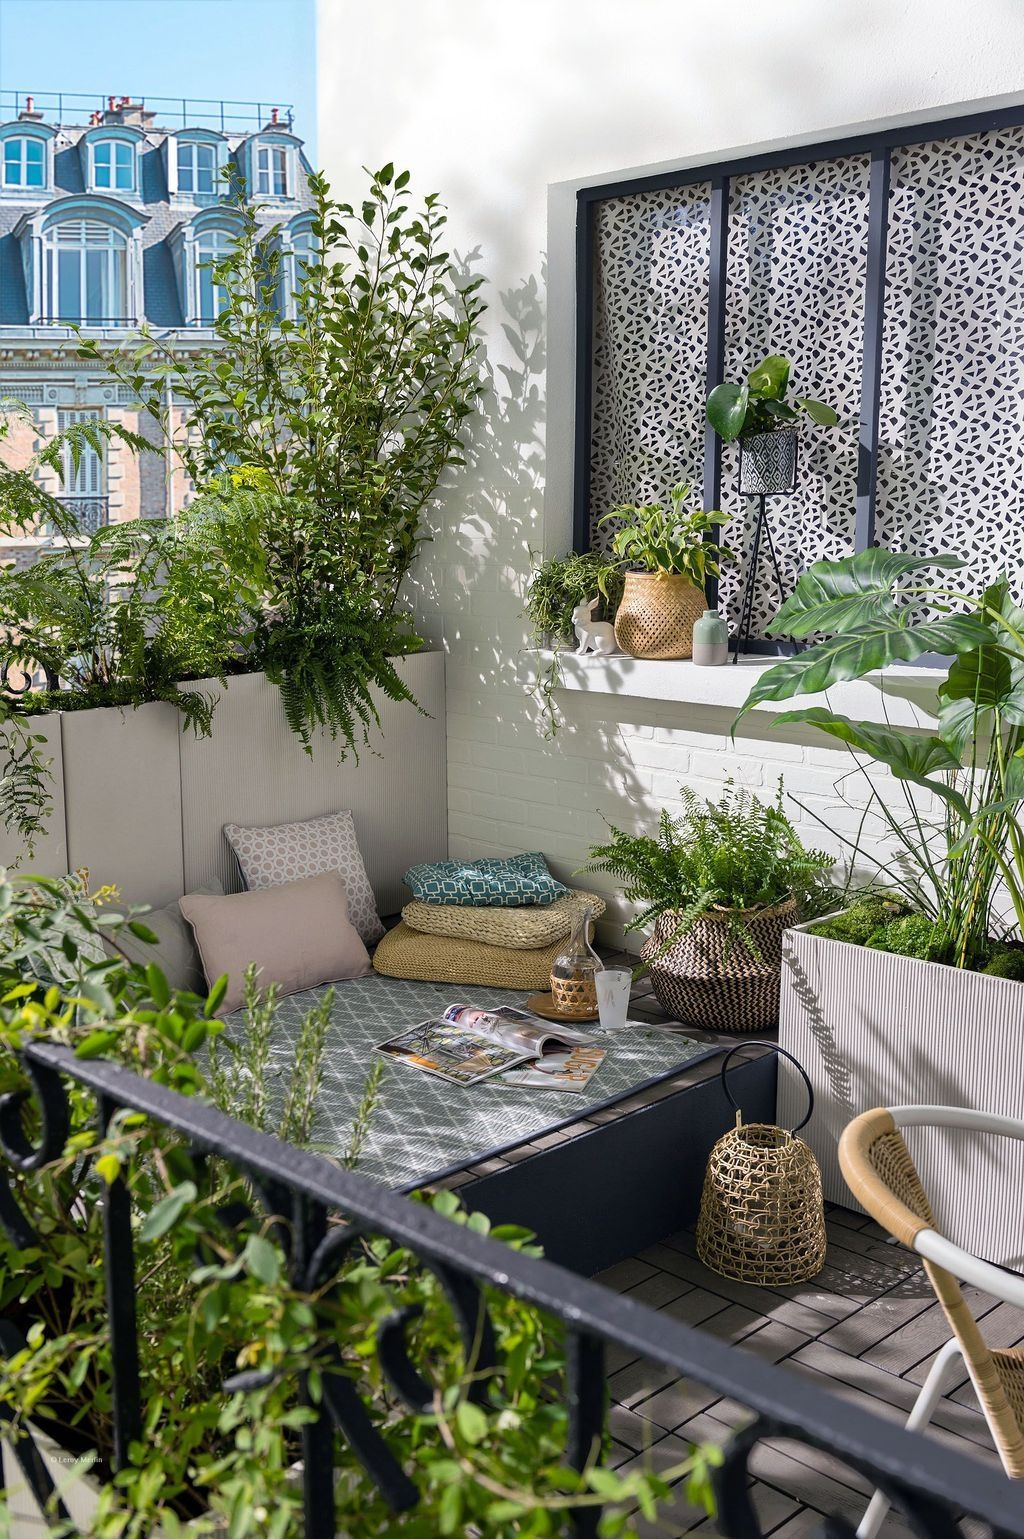 43 Adorable Balcony Apartment Decorating Ideas For The New